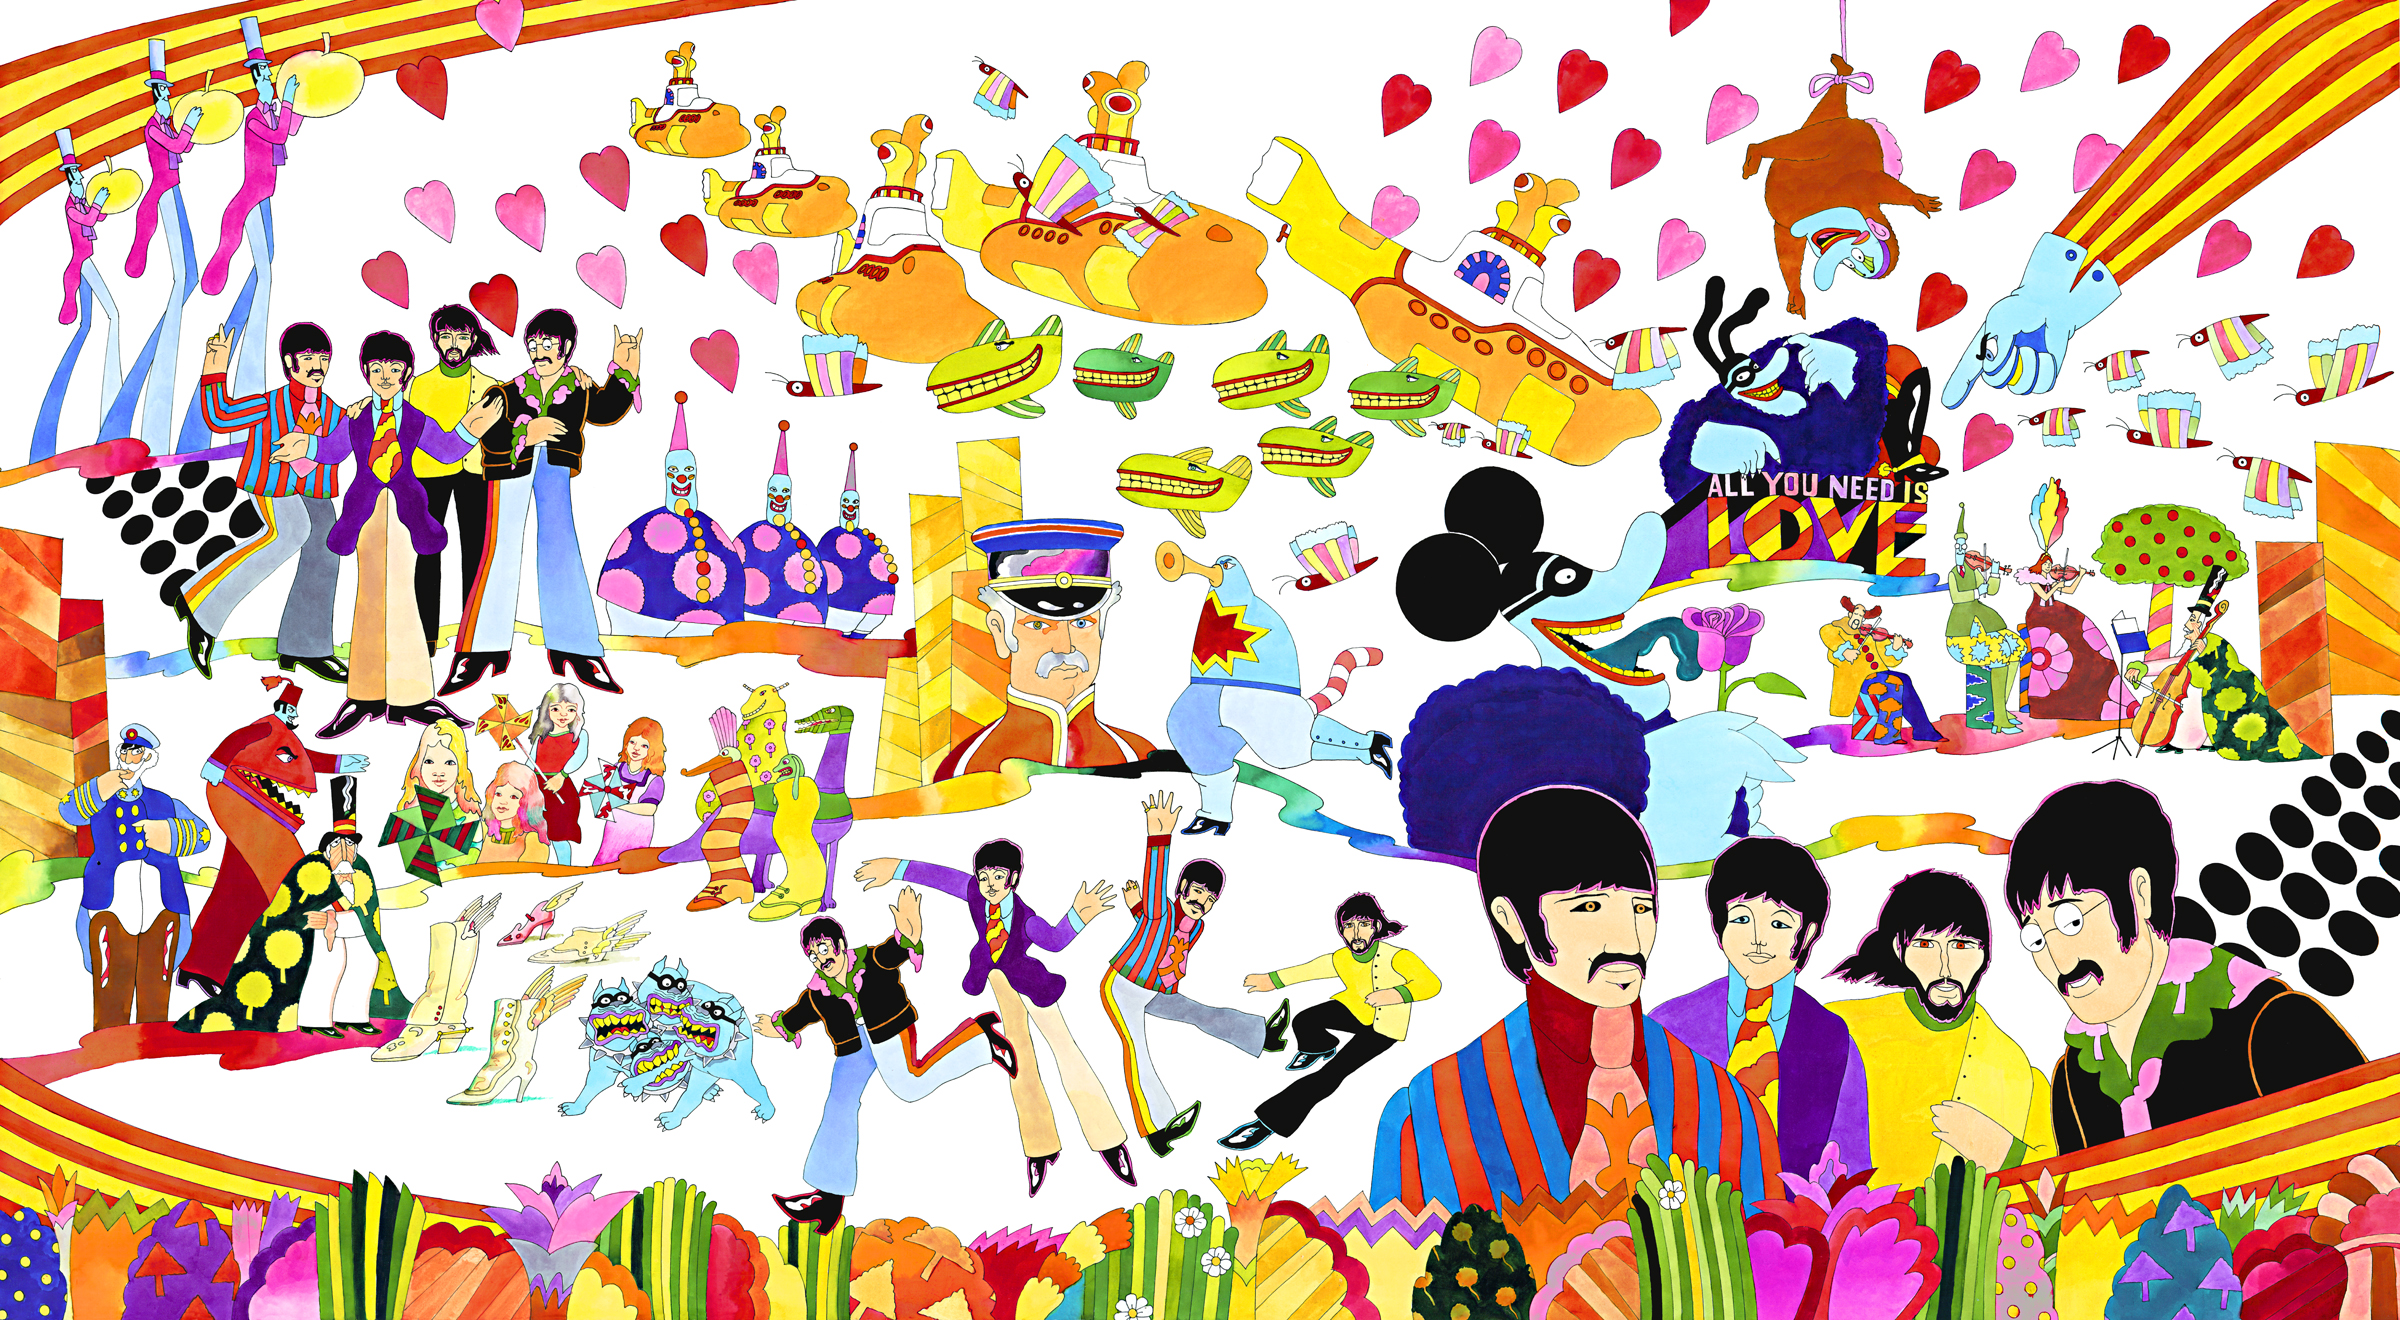 Pepperland by Ron Campbell